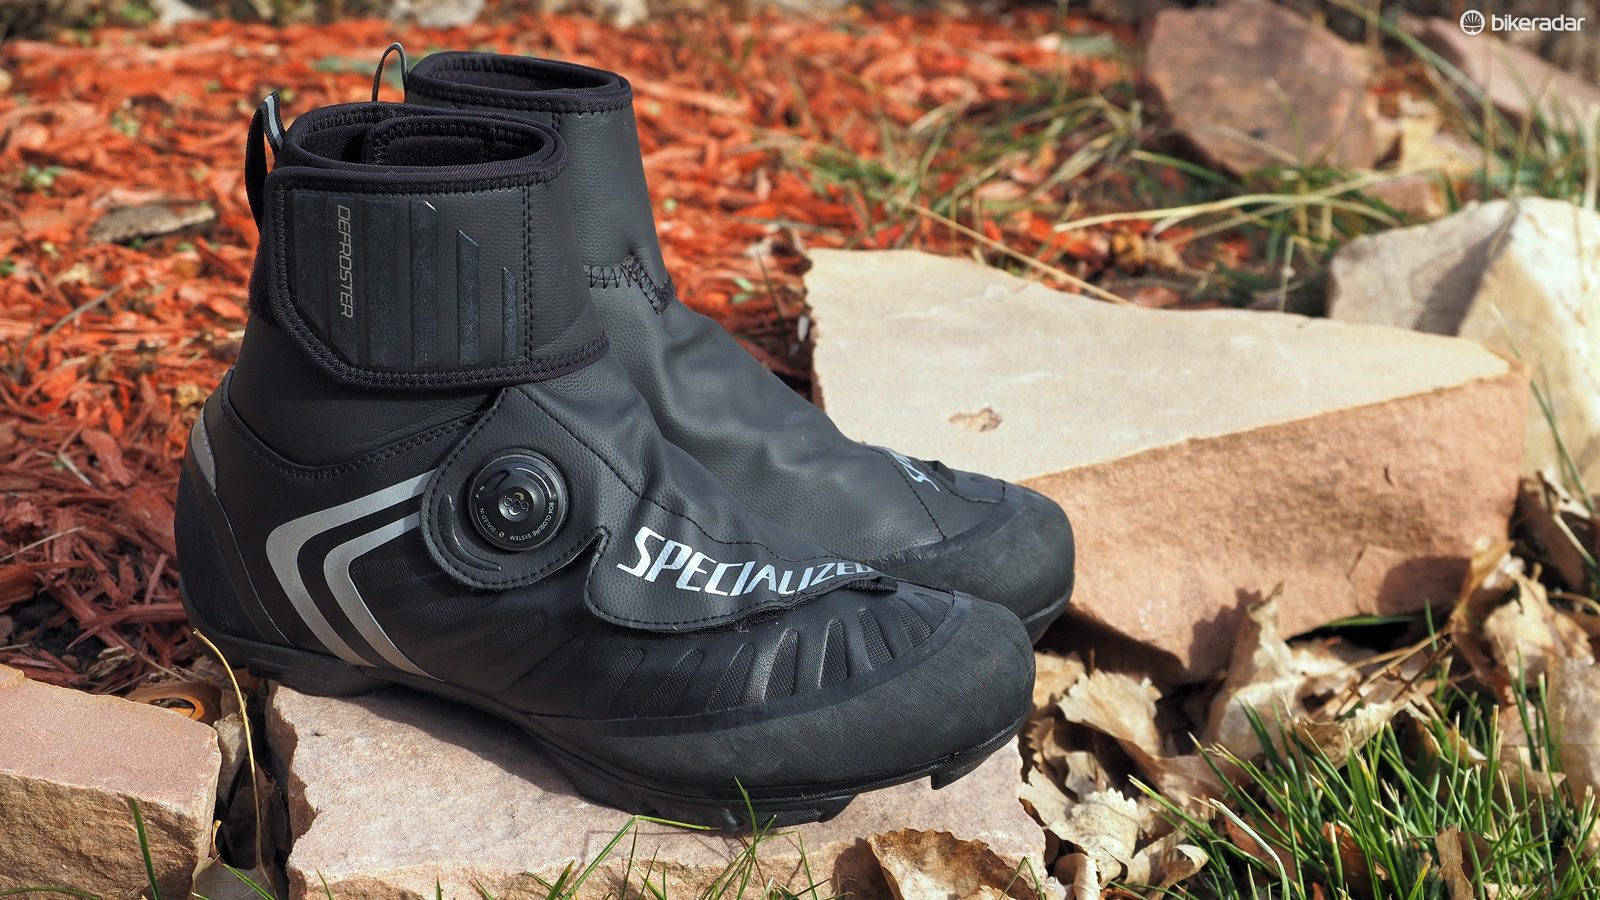 Specialized Defroster Trail winter shoes BikeRadar